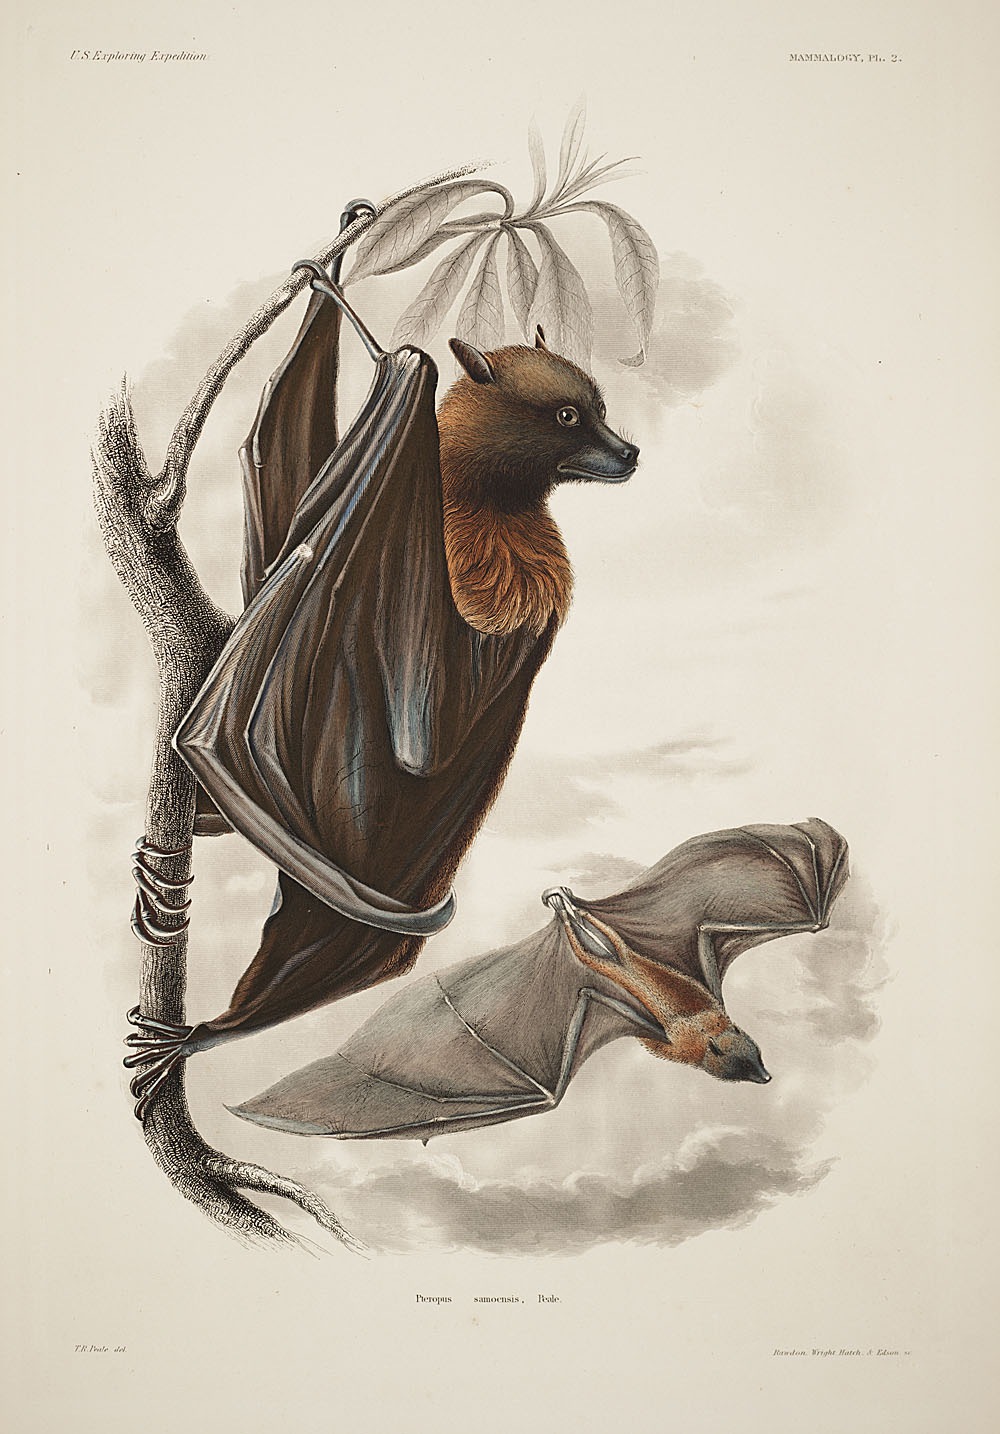 Samoa-Flughund (Cassin J. Mammalogy and Ornithology. Atlas. Philadelphia: C. Sherman and son, 1858, 466 p. Mammalogy, Plate 2.)